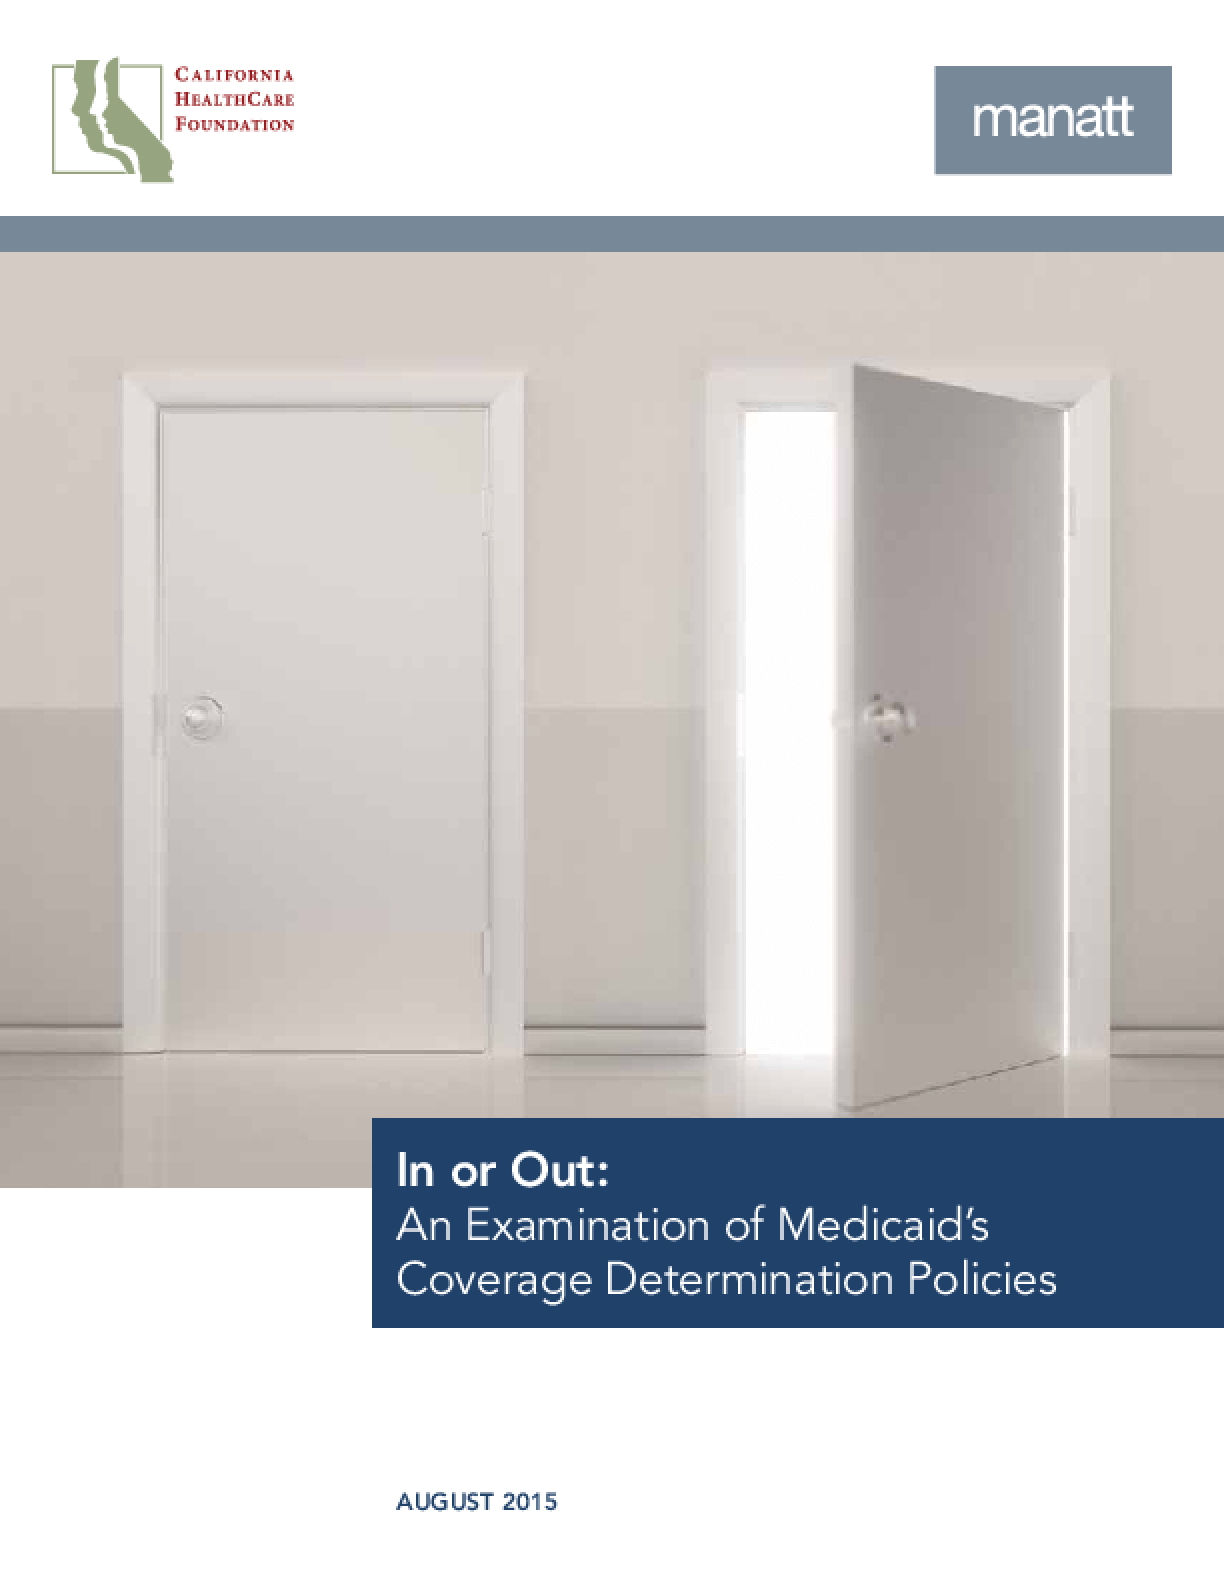 In or Out: An Examination of Medicaid's Coverage Determination Policies